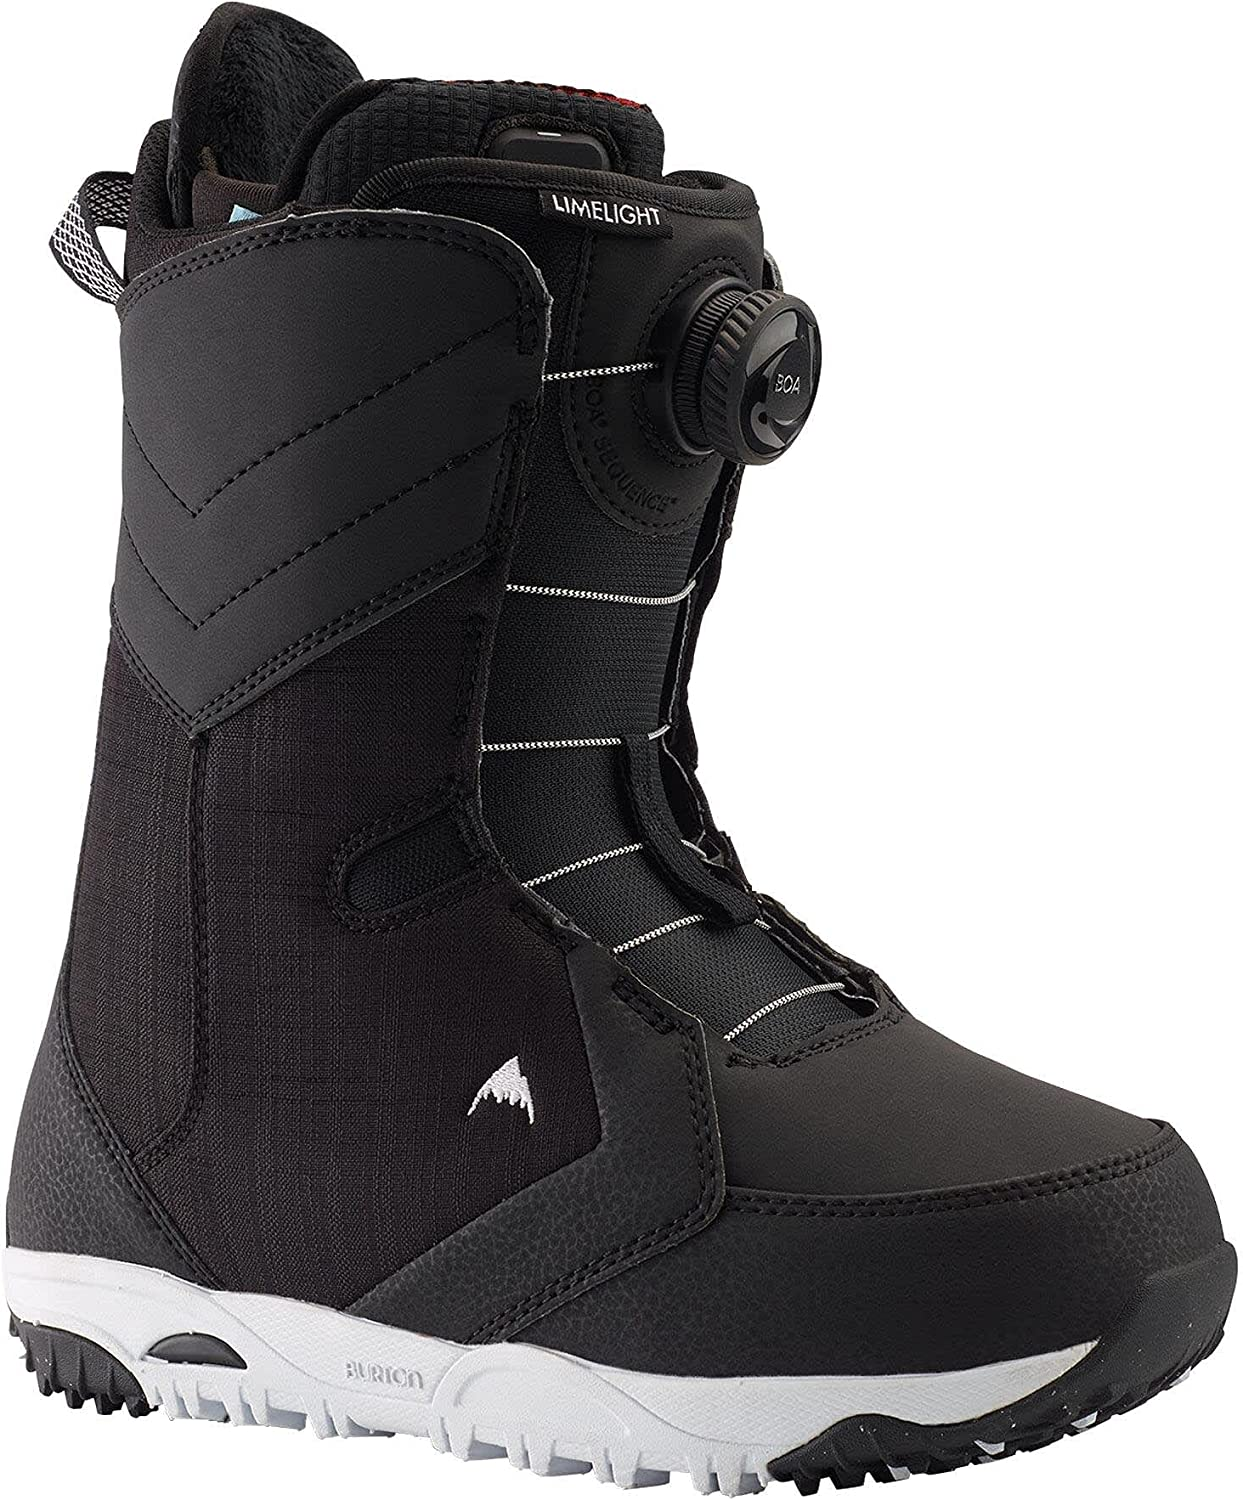 BURTON Limelight Max 81% OFF Boa Heat Women's Boot Outlet ☆ Free Shipping Snowboard -